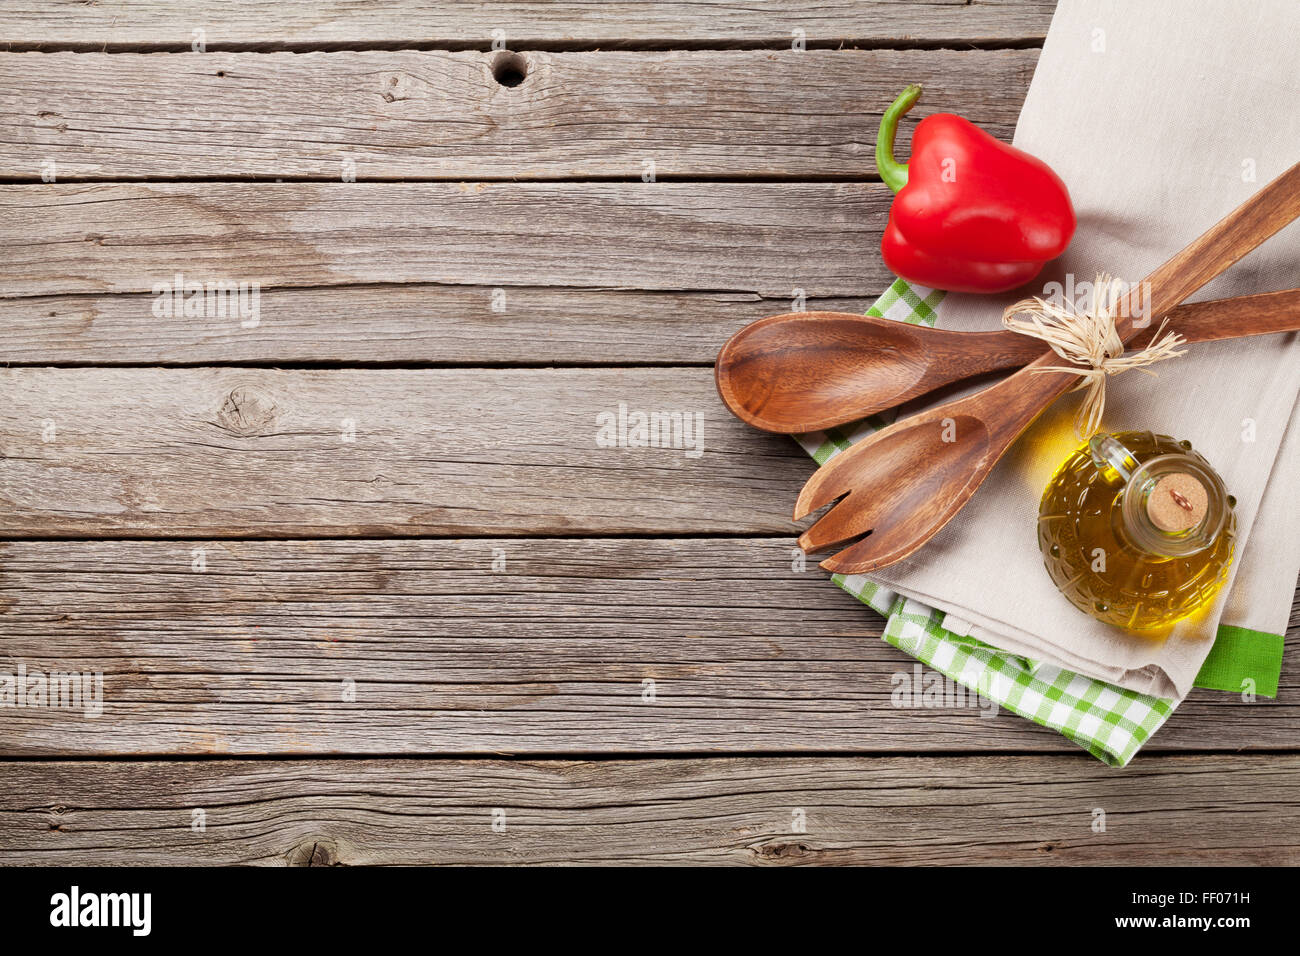 Cooking utensils and ingredients on wooden table top view